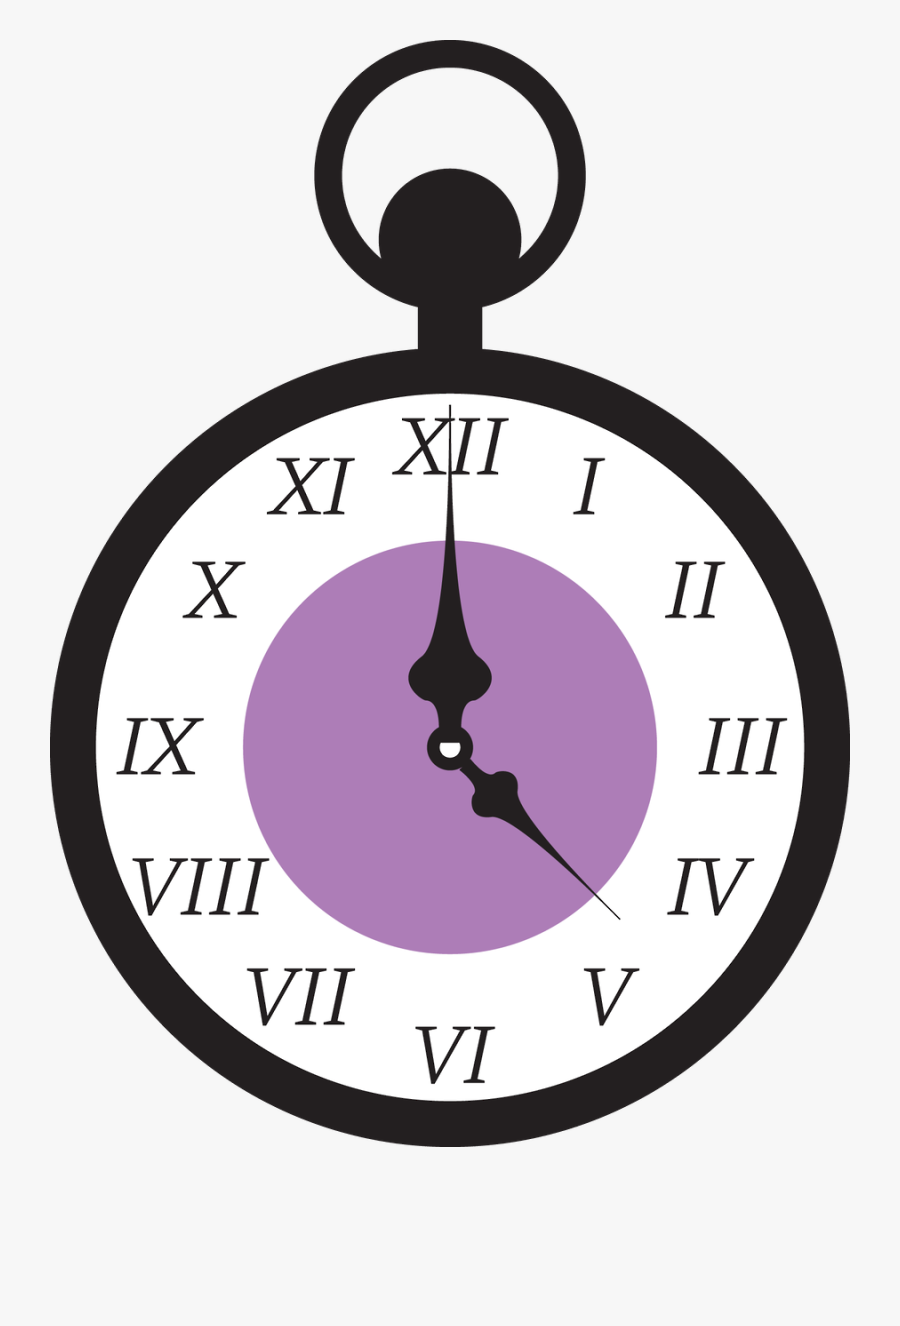 Years Eve Clipart Clock - Alice In Wonderland Clock Drawing, Transparent Clipart